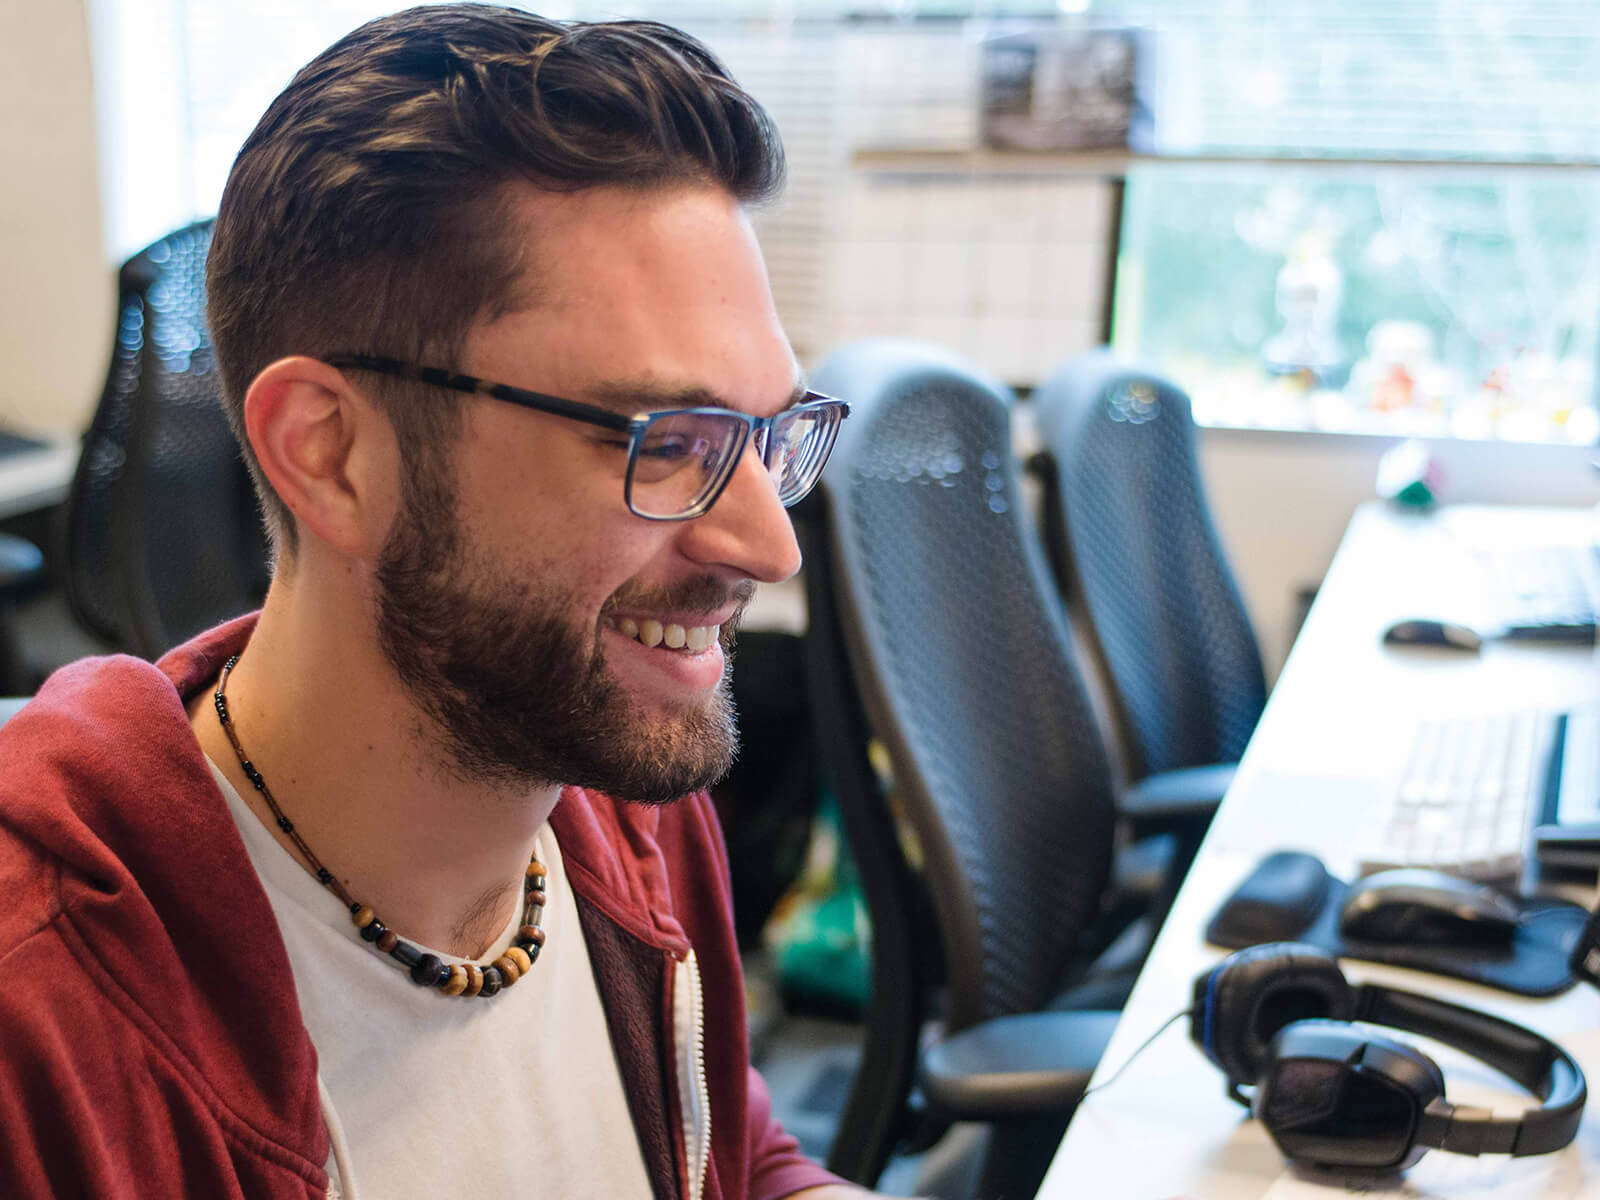 A student wearing glasses sits in a computer lab smiling at his computer screen.